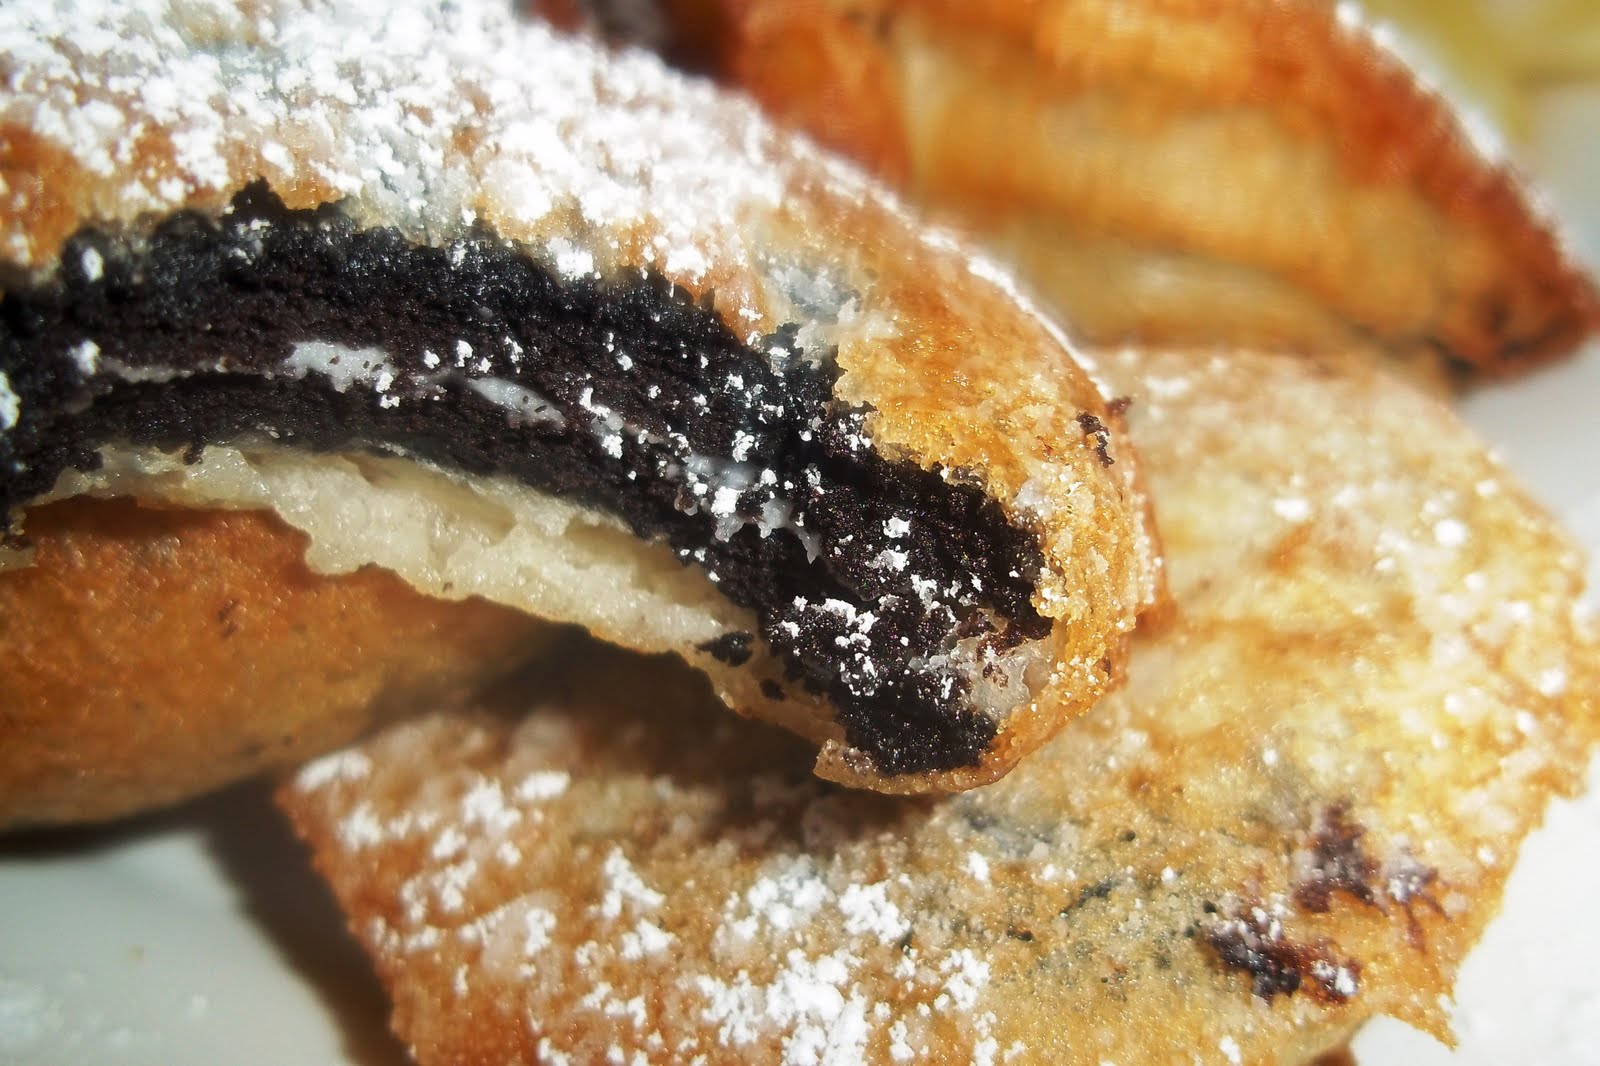 ... about the thought of eating fried cookies, give these babies a try